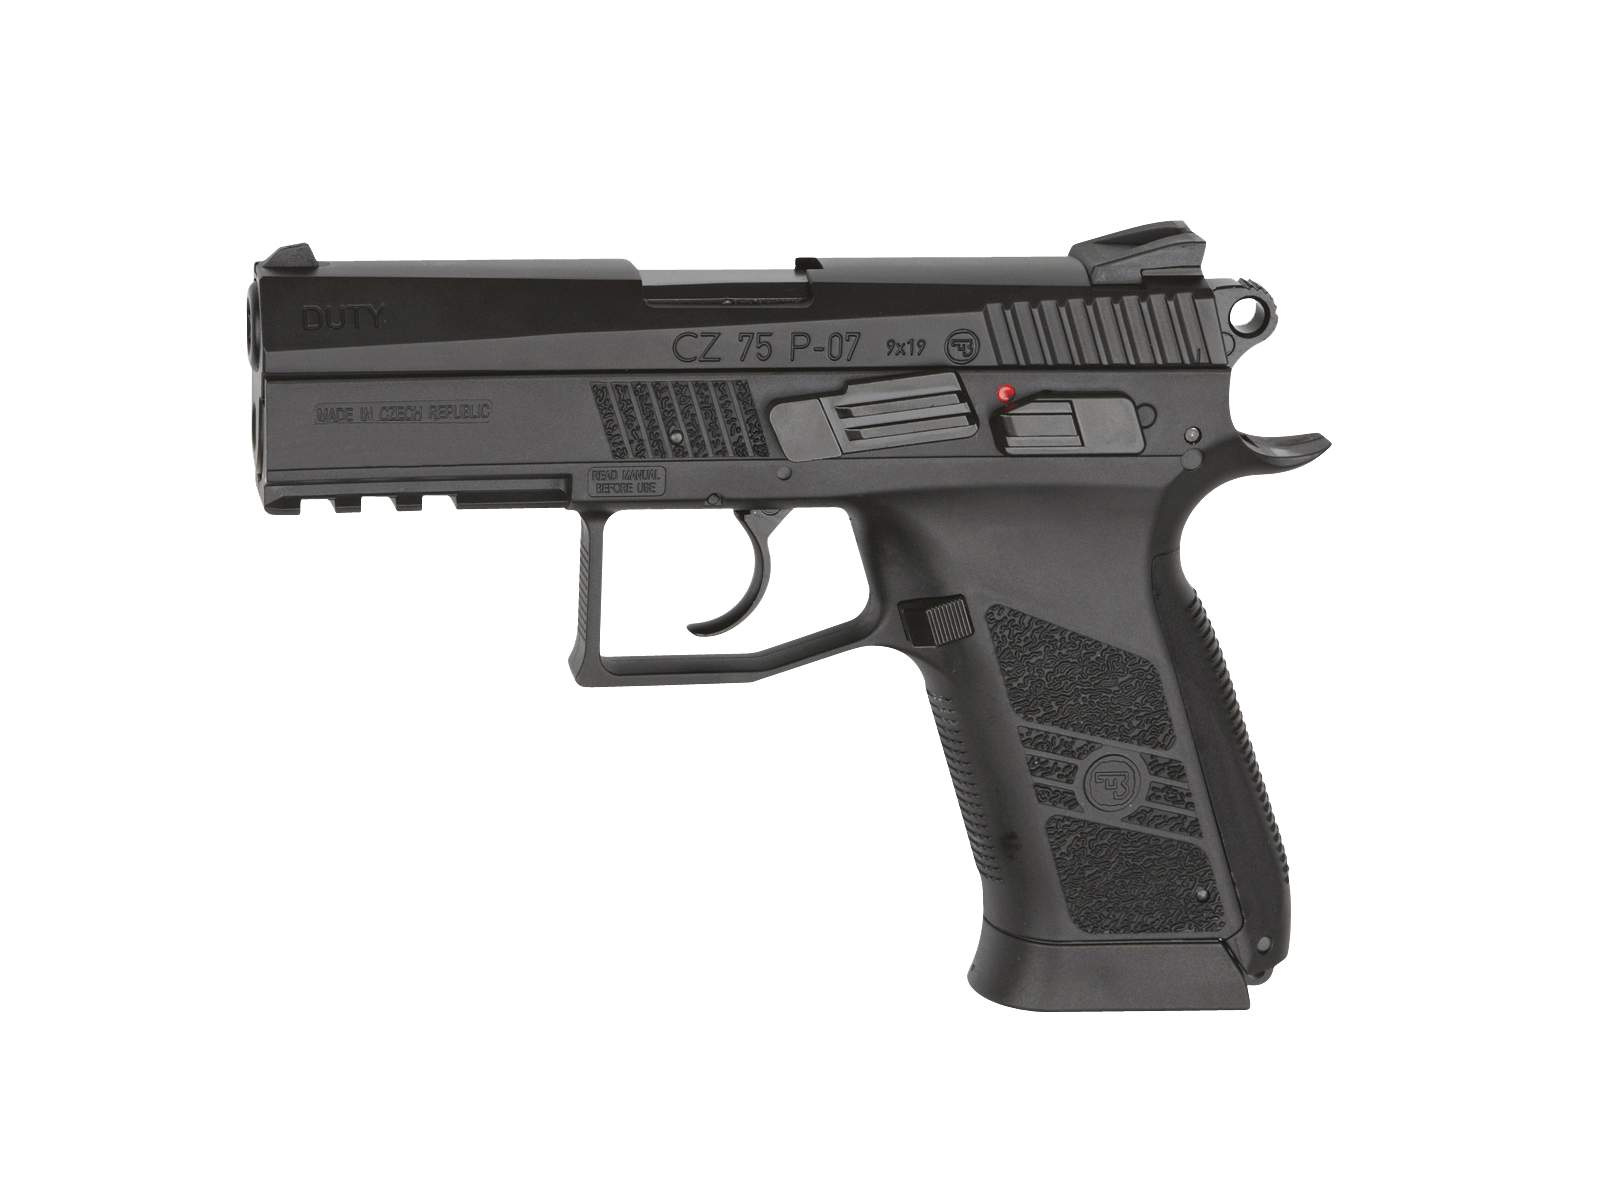 Réplique Pistolet CZ 75 P-07 DUTY GBB CO2